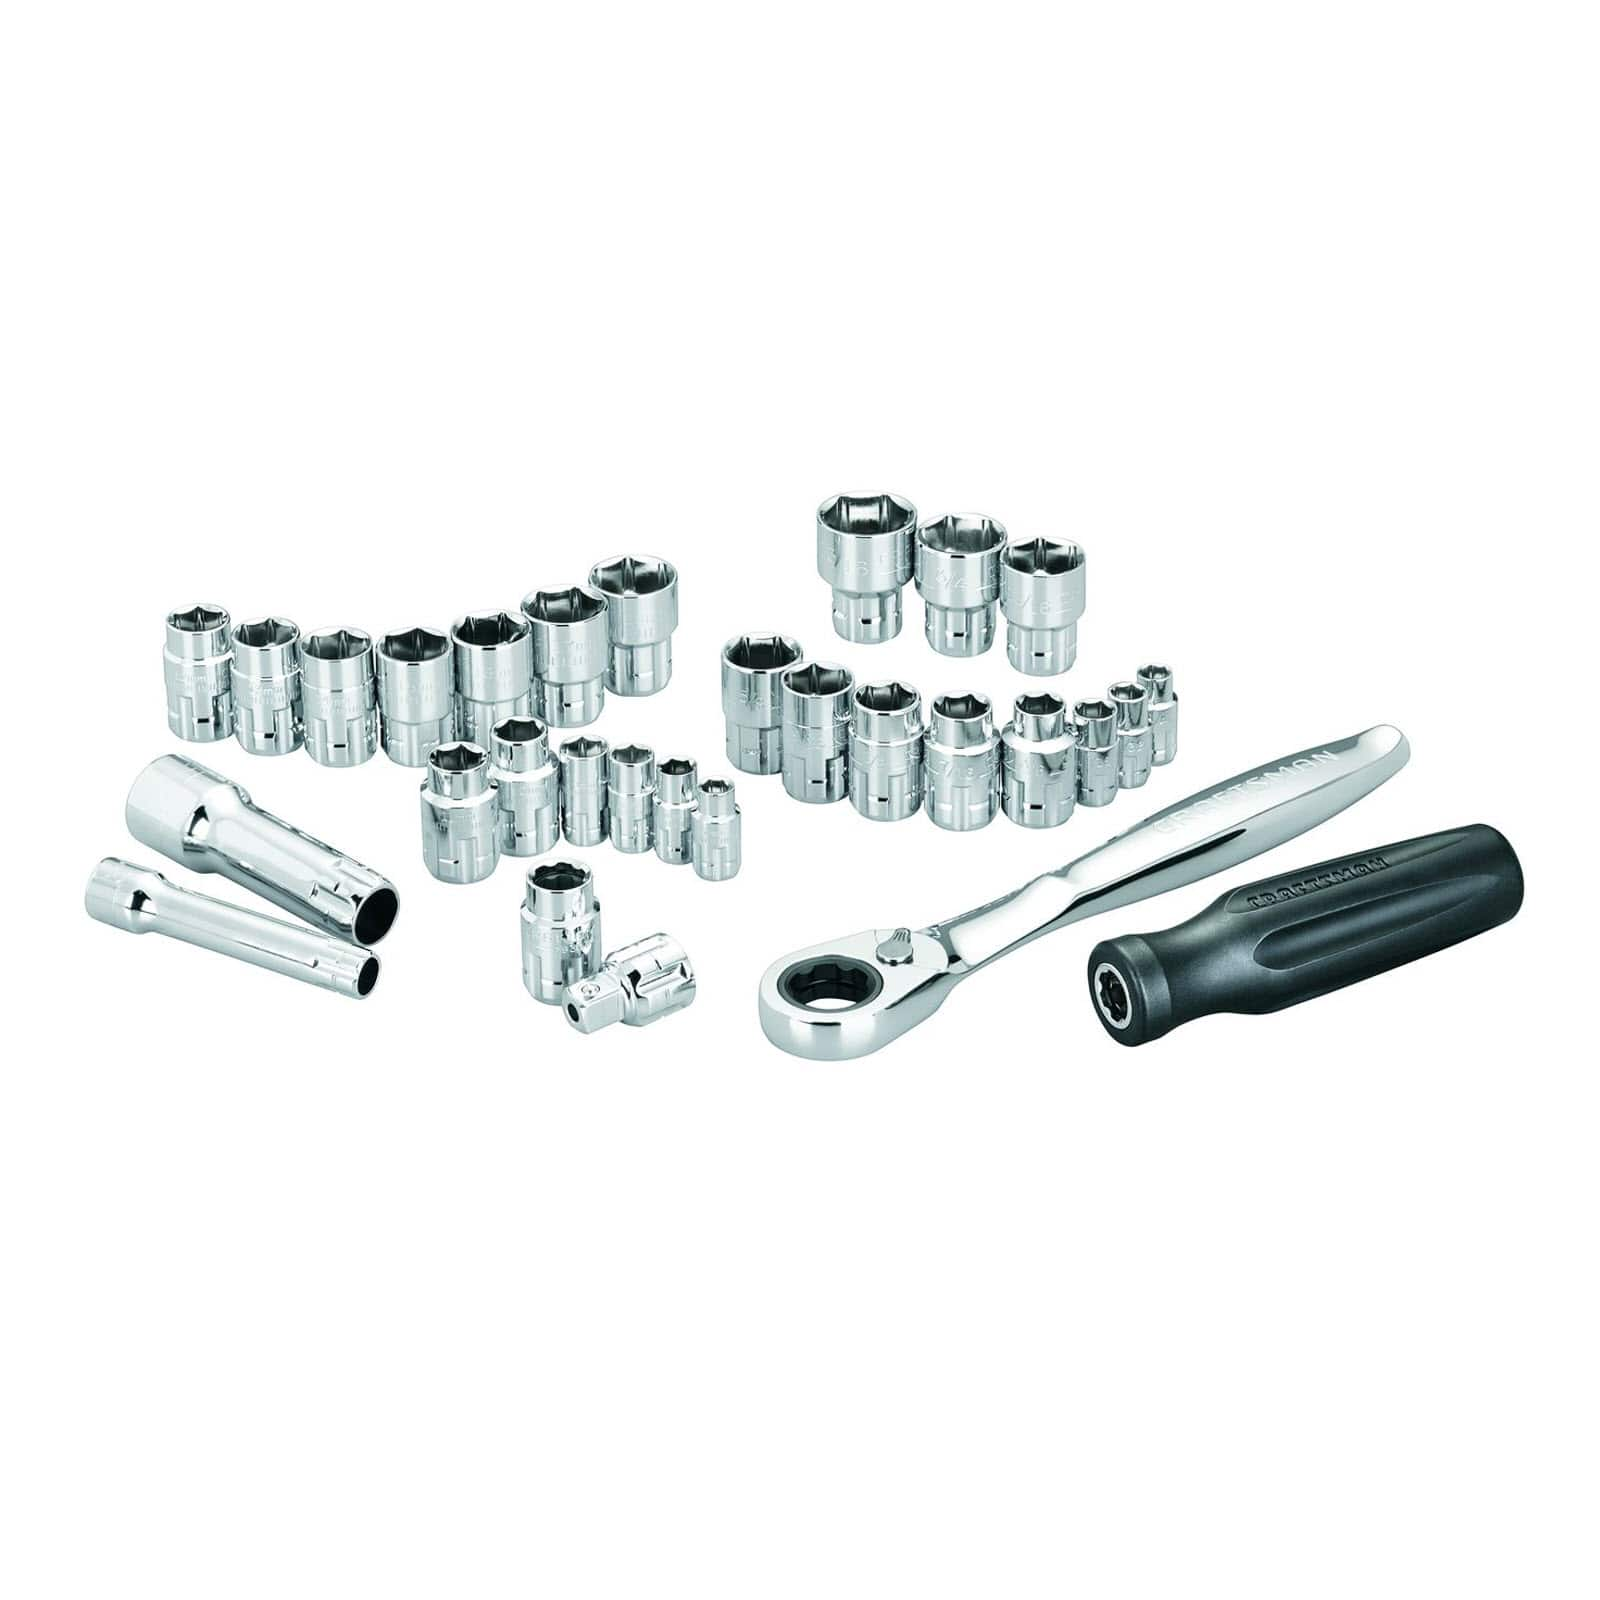 "Sears Craftsman 30 pc. 1/4"" & 3/8"" Drive Max Axess Socket Wrench Set $18.94"